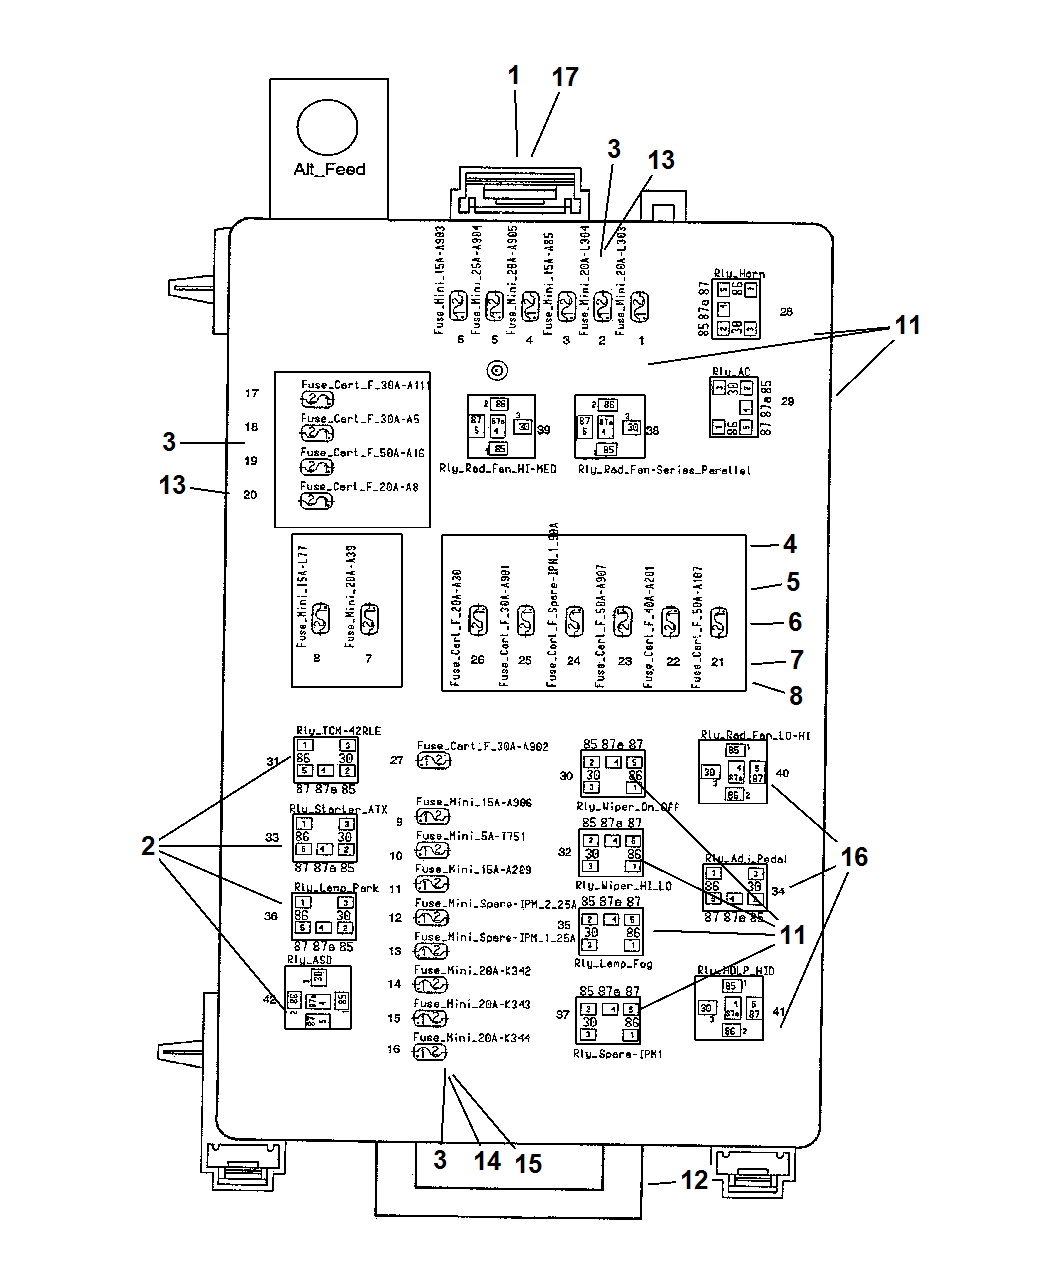 Fabulous 2006 Dodge Charger Fuse Box Diagram Wiring Library Wiring Cloud Hisonepsysticxongrecoveryedborg